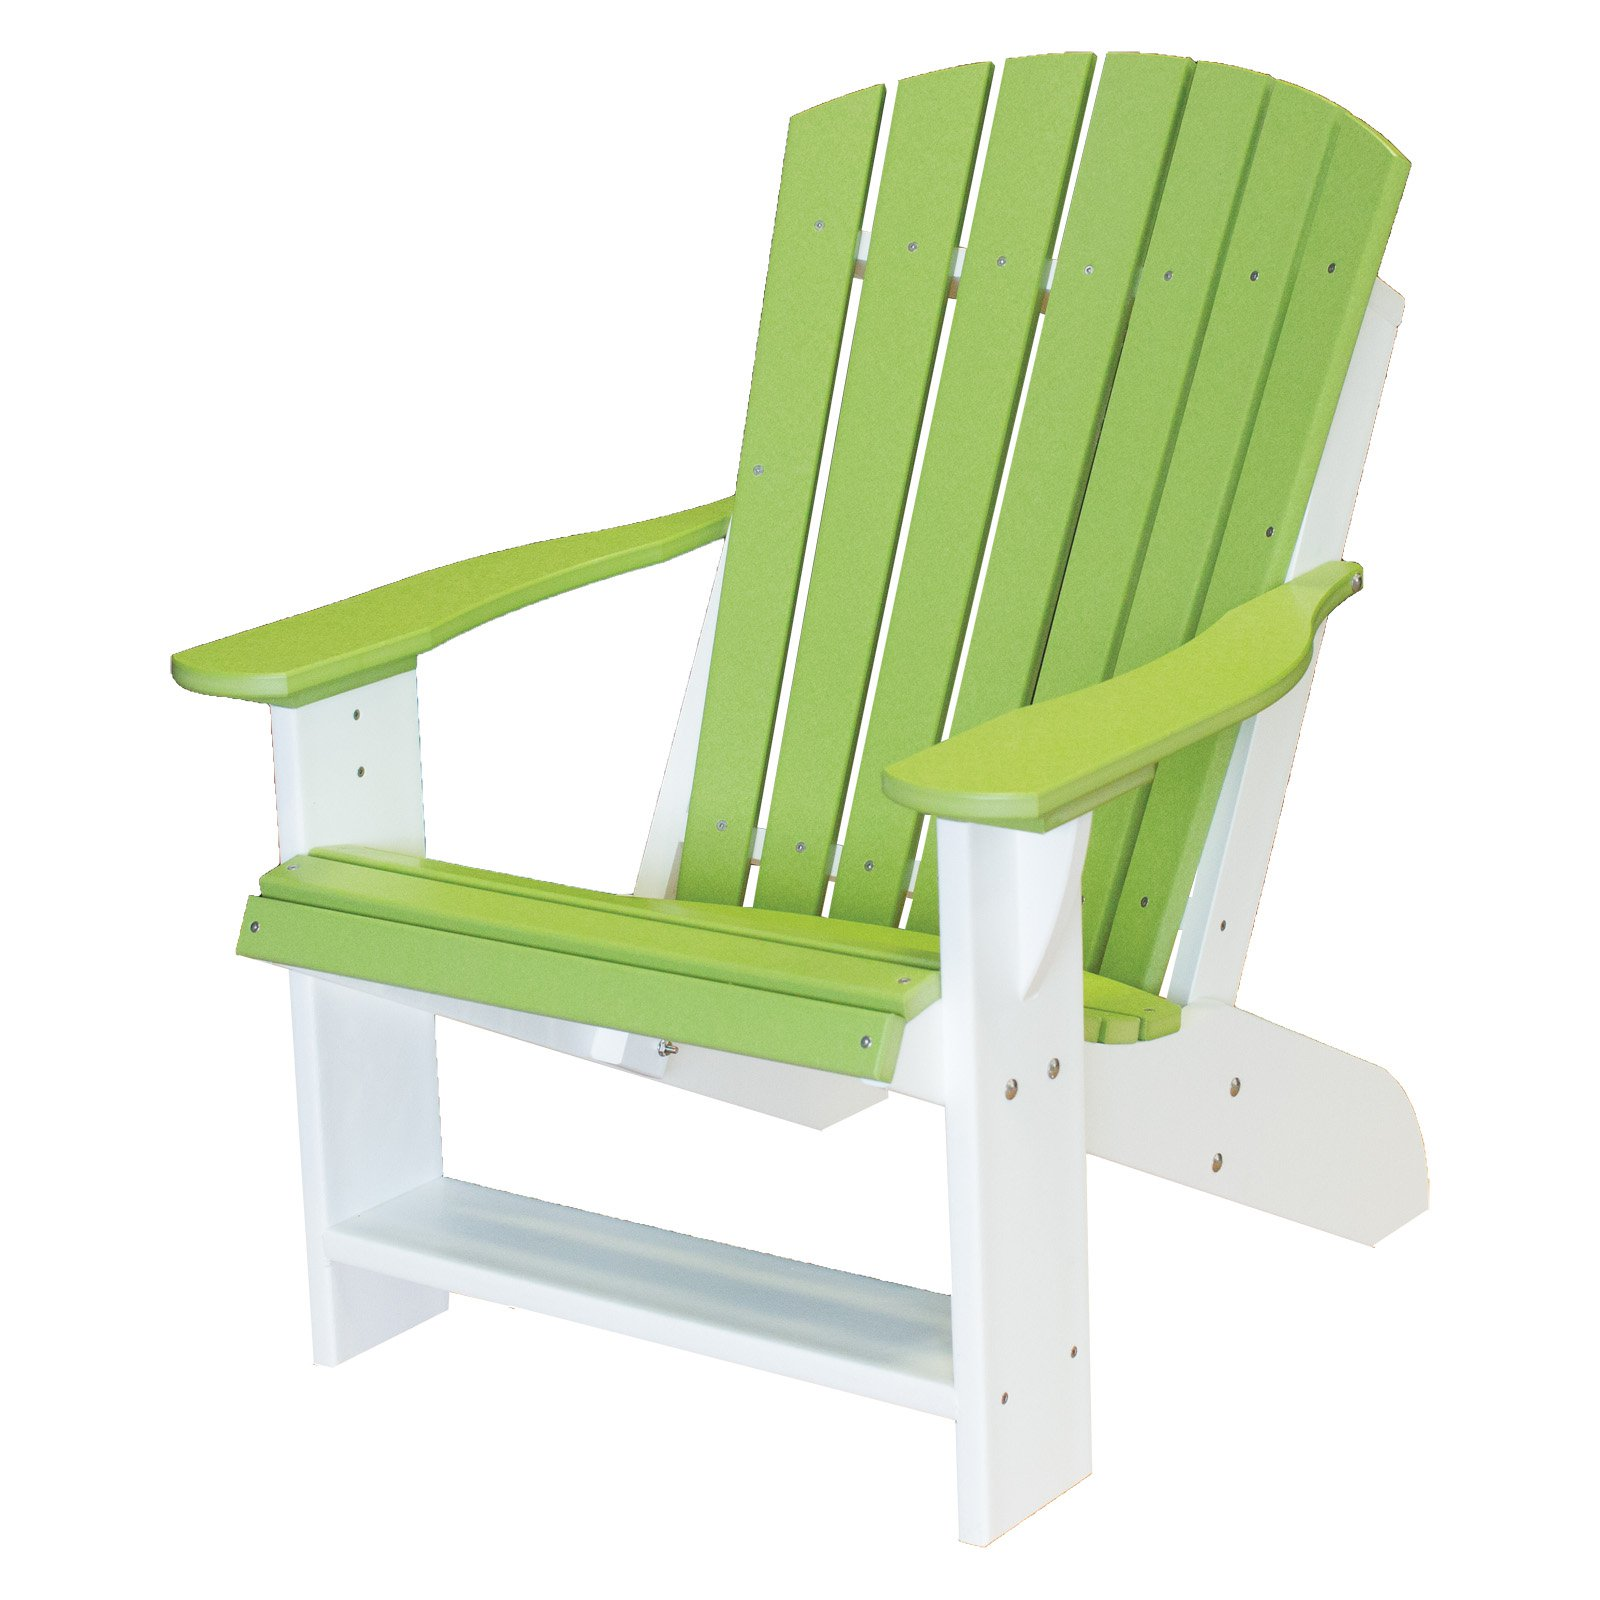 Amazing Wildridge Wildridge Two Tone Recycled Plastic Adirondack Andrewgaddart Wooden Chair Designs For Living Room Andrewgaddartcom